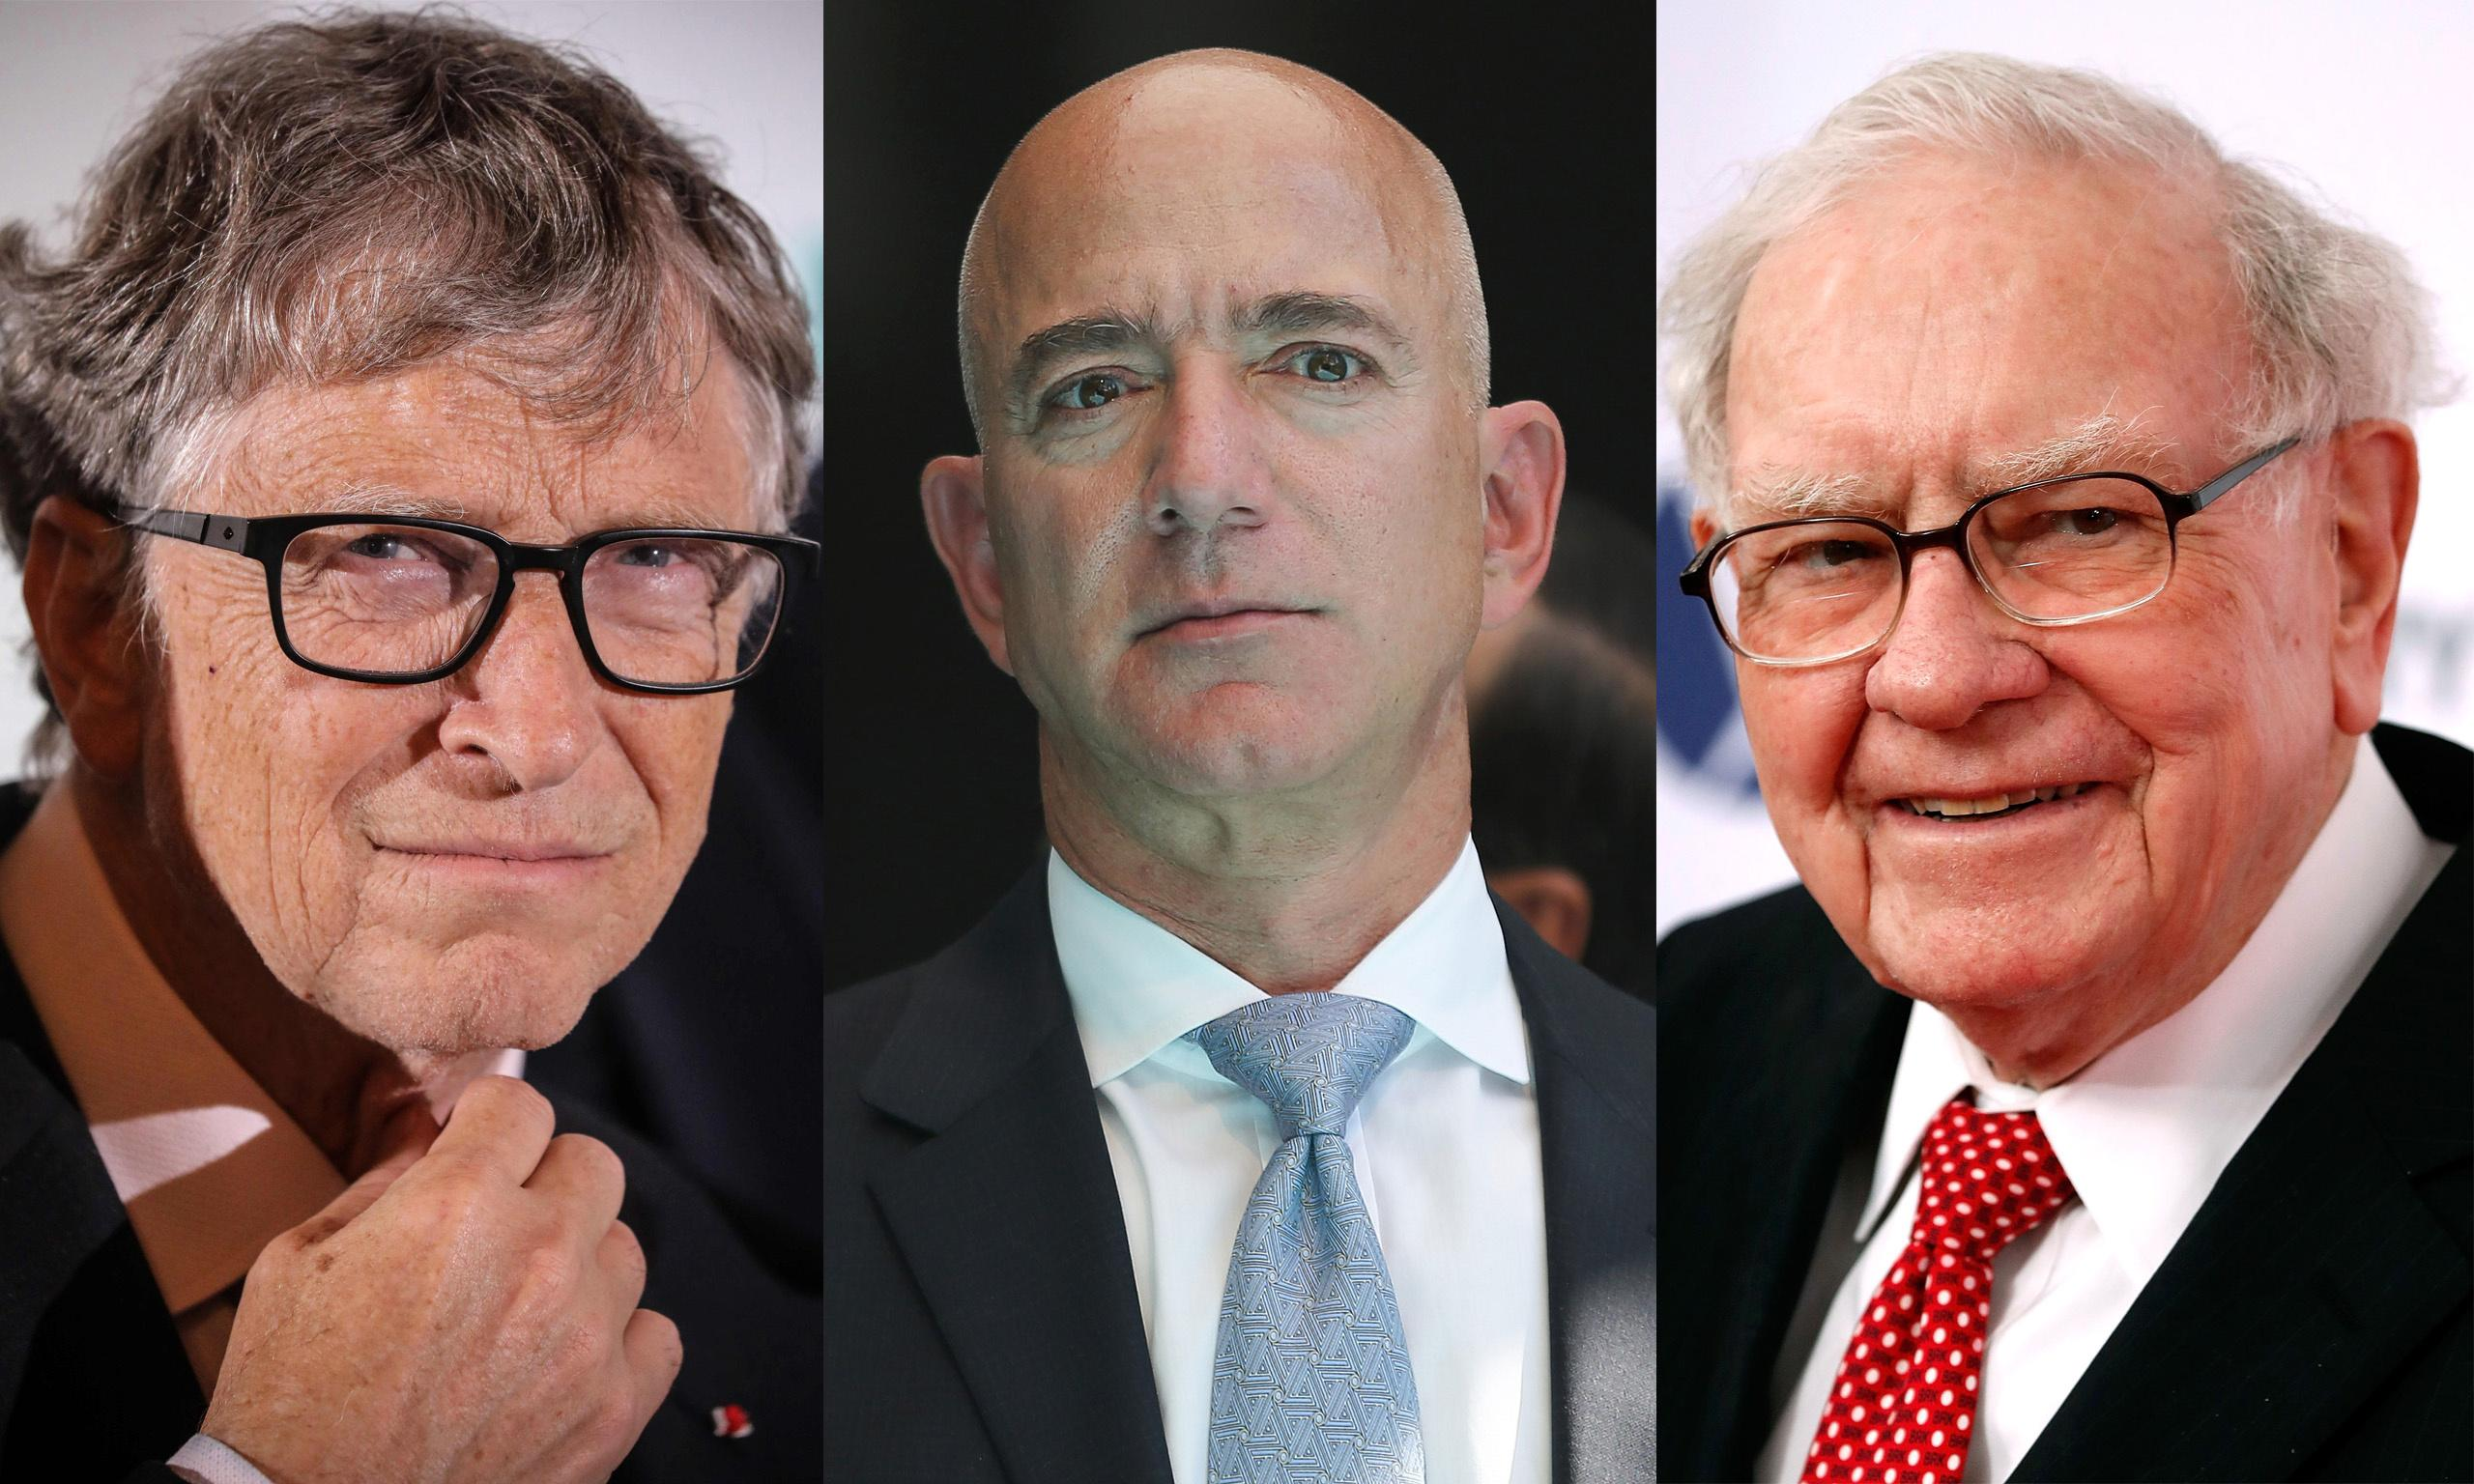 Think billionaires are just super-rich people? Big mistake